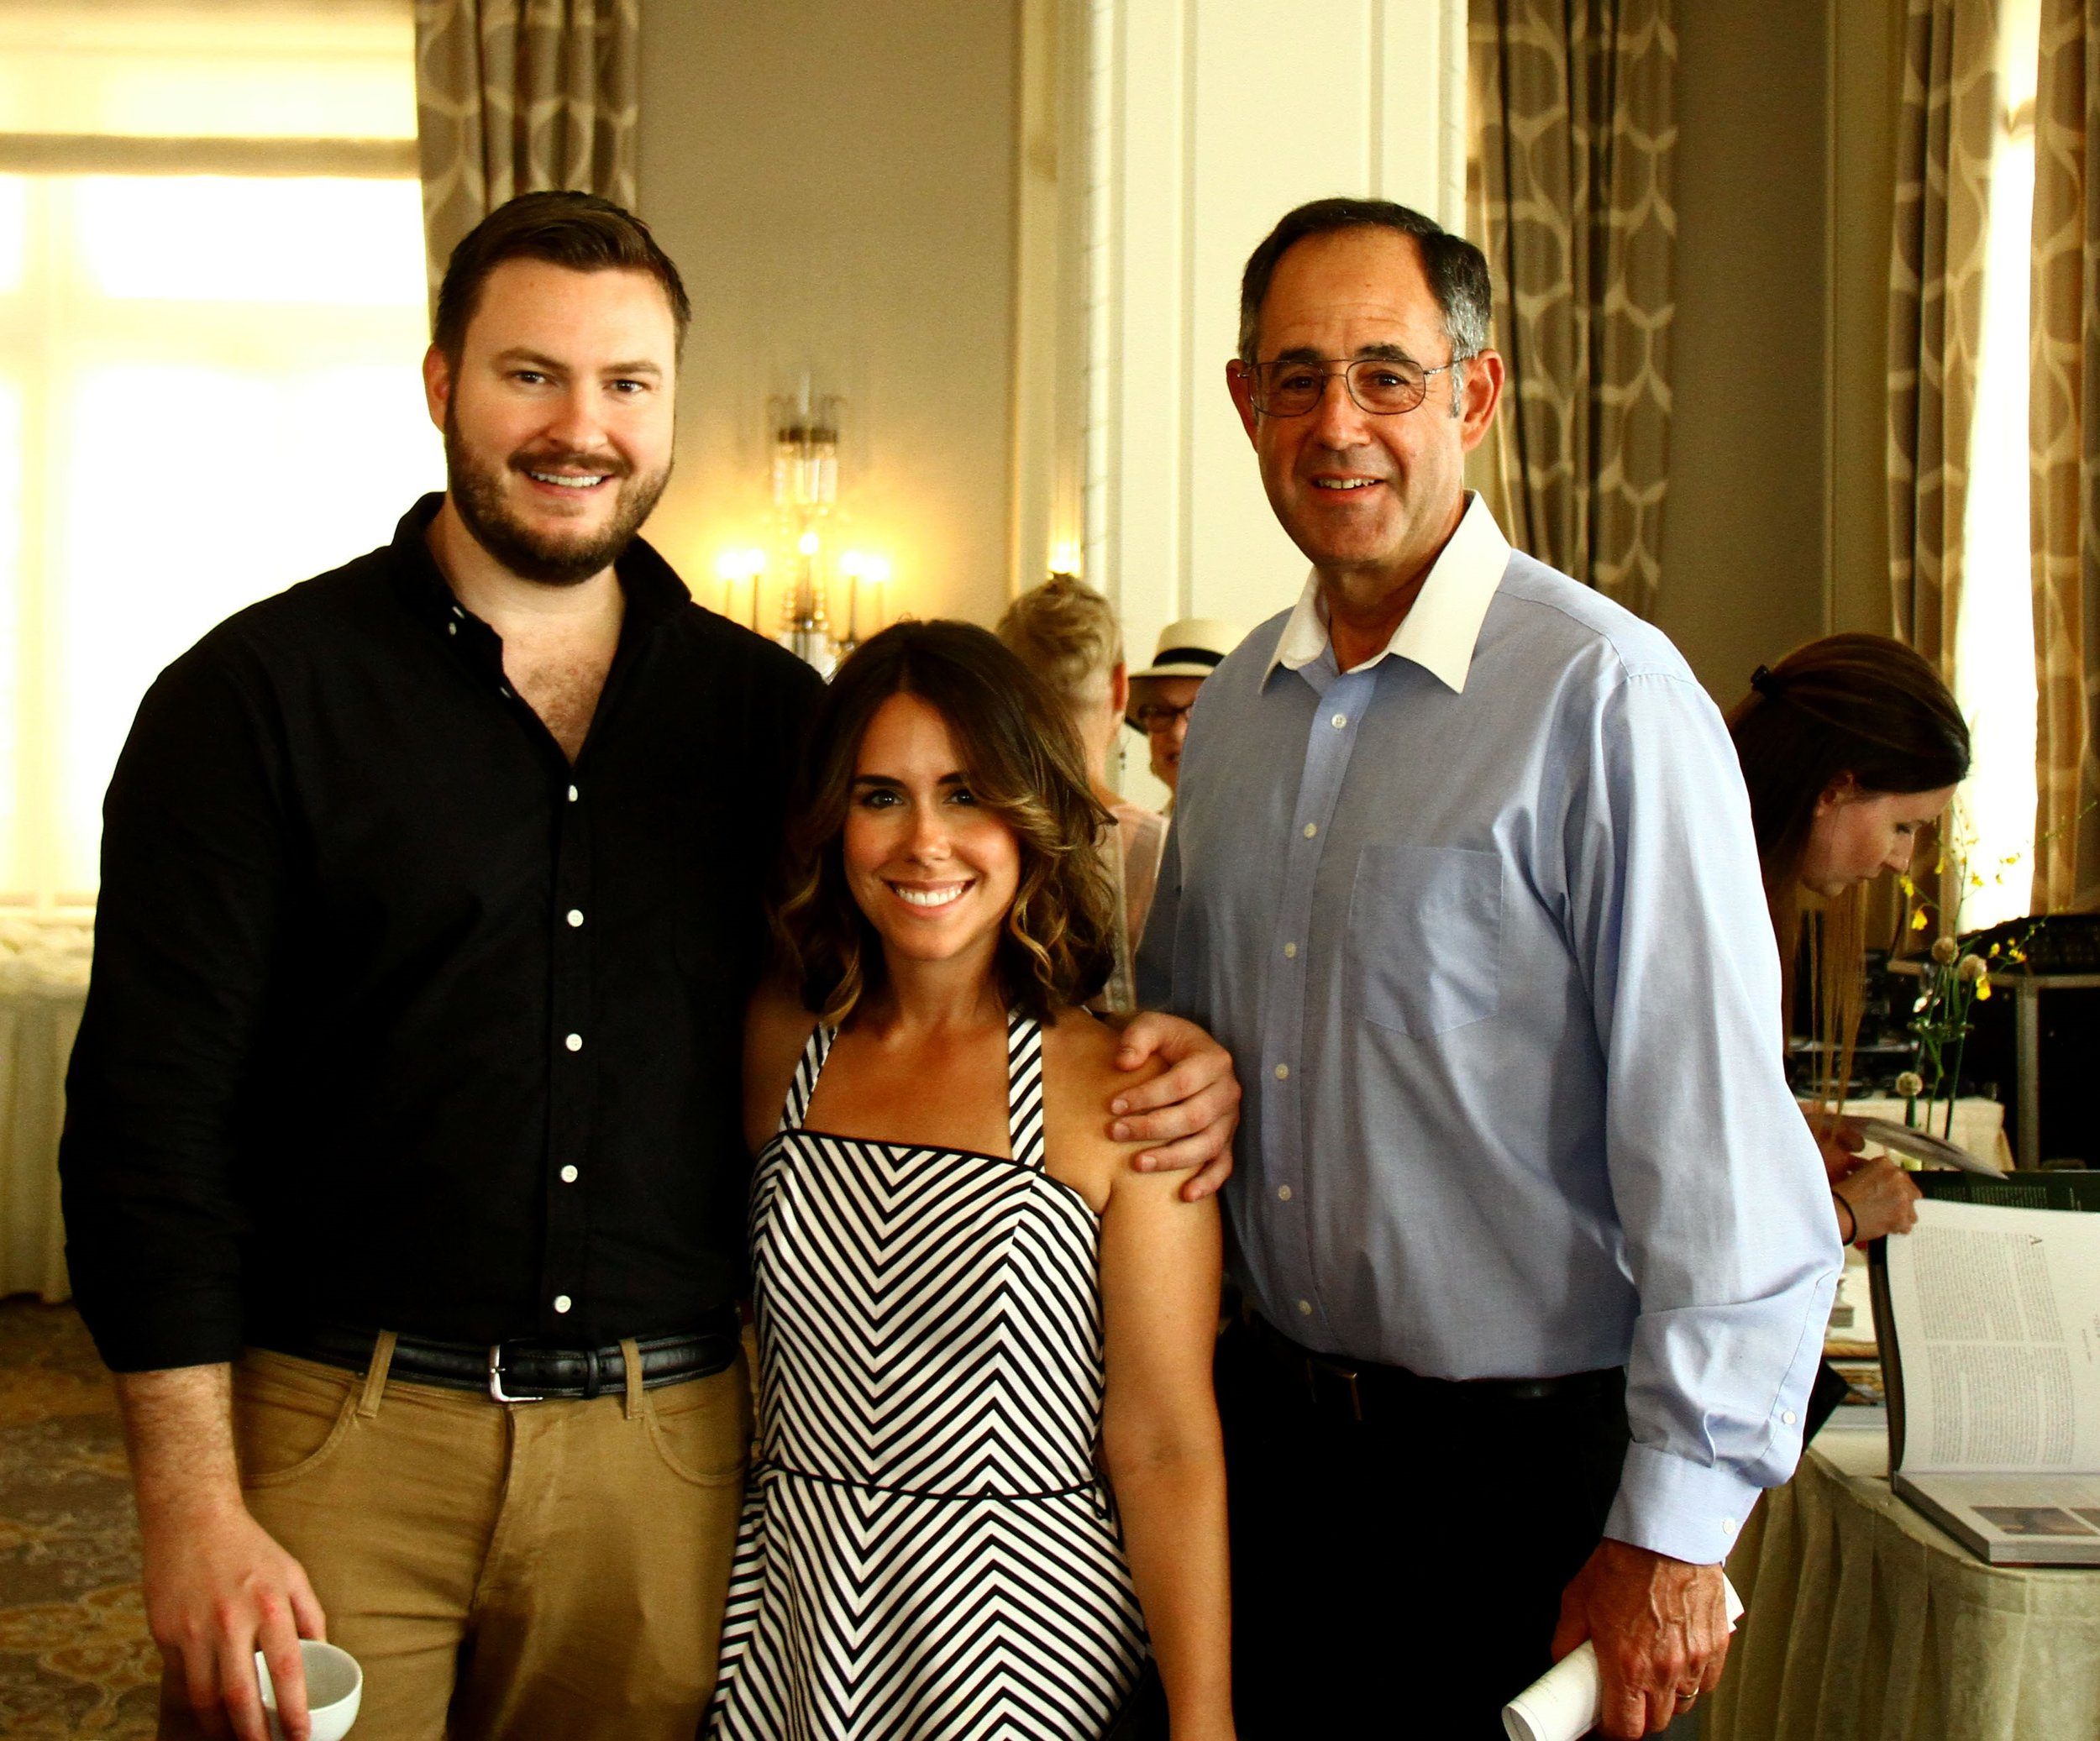 ICAA NWW Board Member, Robert Laney (left), with his fiancee Amanda Rubeck and her father, Al Rubeck.